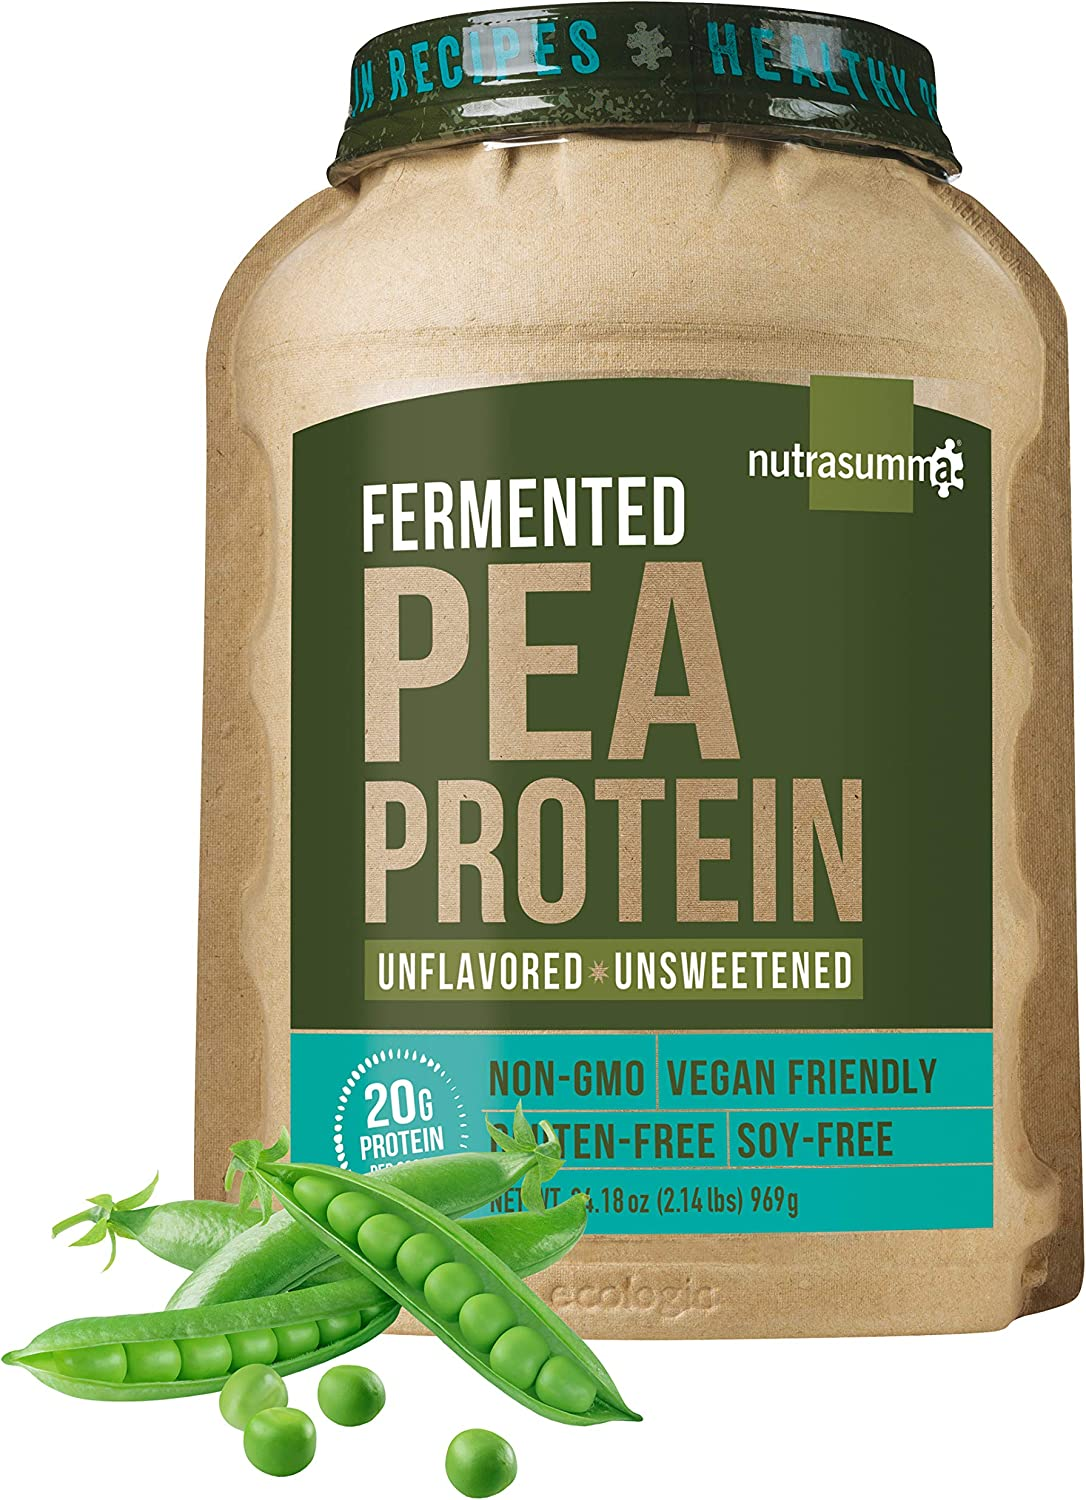 Nutrasumma 100 Plant Based Fermented Pea Protein Powder, Unflavored and Unsweetened, 2.14lbs – North American Sourced Peas – Vegan, Non-GMO, Gluten Soy Free, No Artificial Flavors and Colors